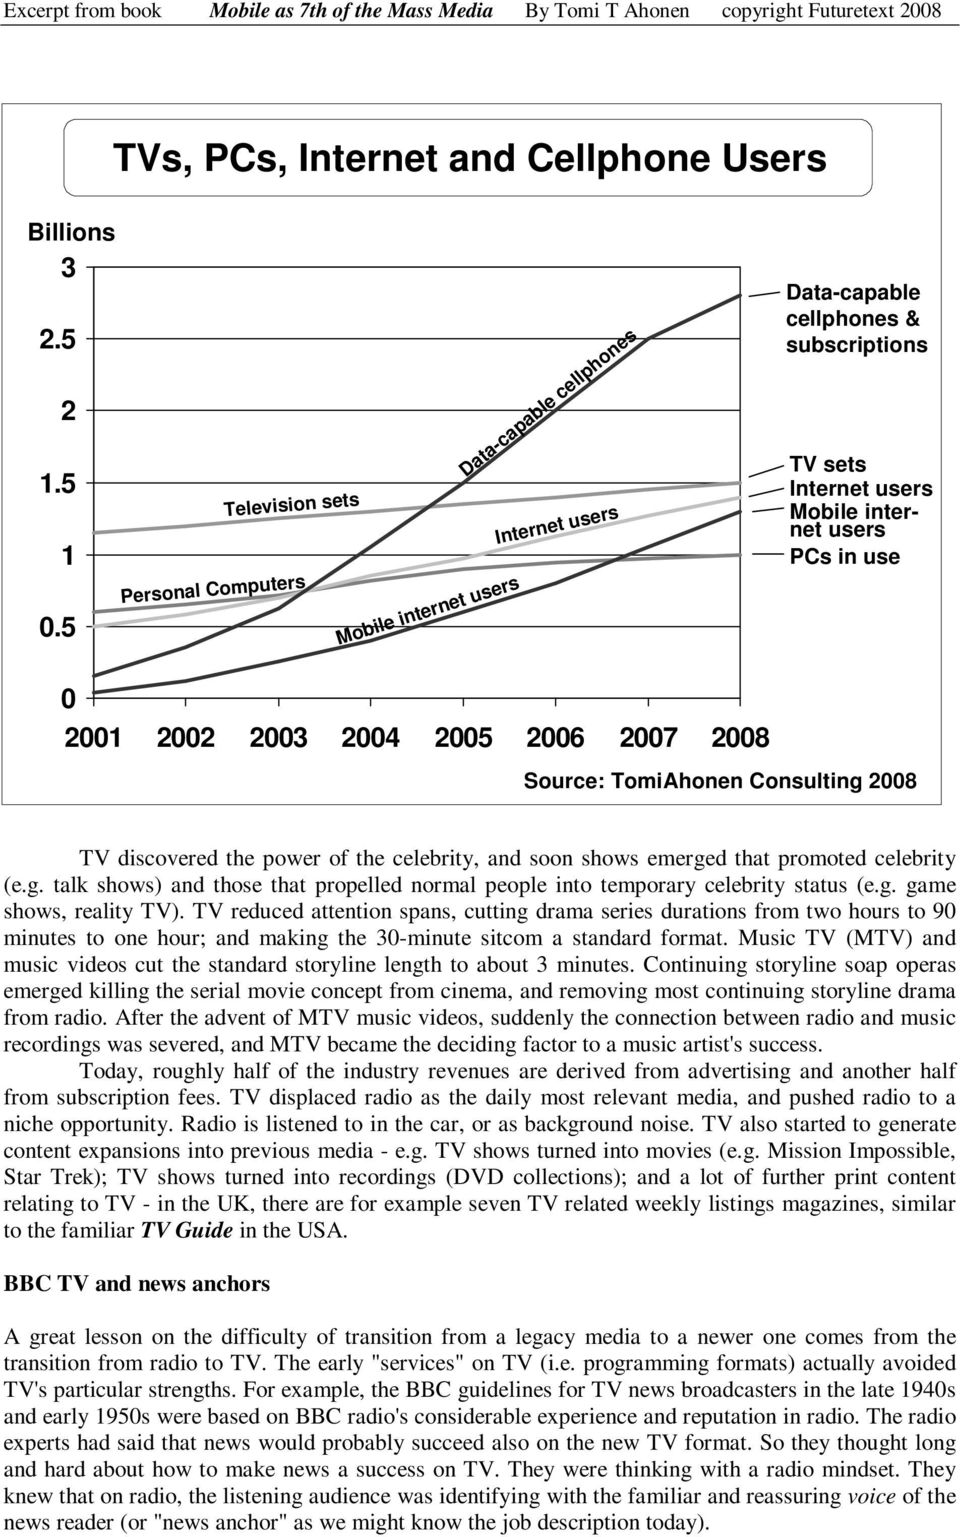 2001 2002 2003 2004 2005 2006 2007 2008 Source: TomiAhonen Consulting 2008 TV discovered the power of the celebrity, and soon shows emerged that promoted celebrity (e.g. talk shows) and those that propelled normal people into temporary celebrity status (e.